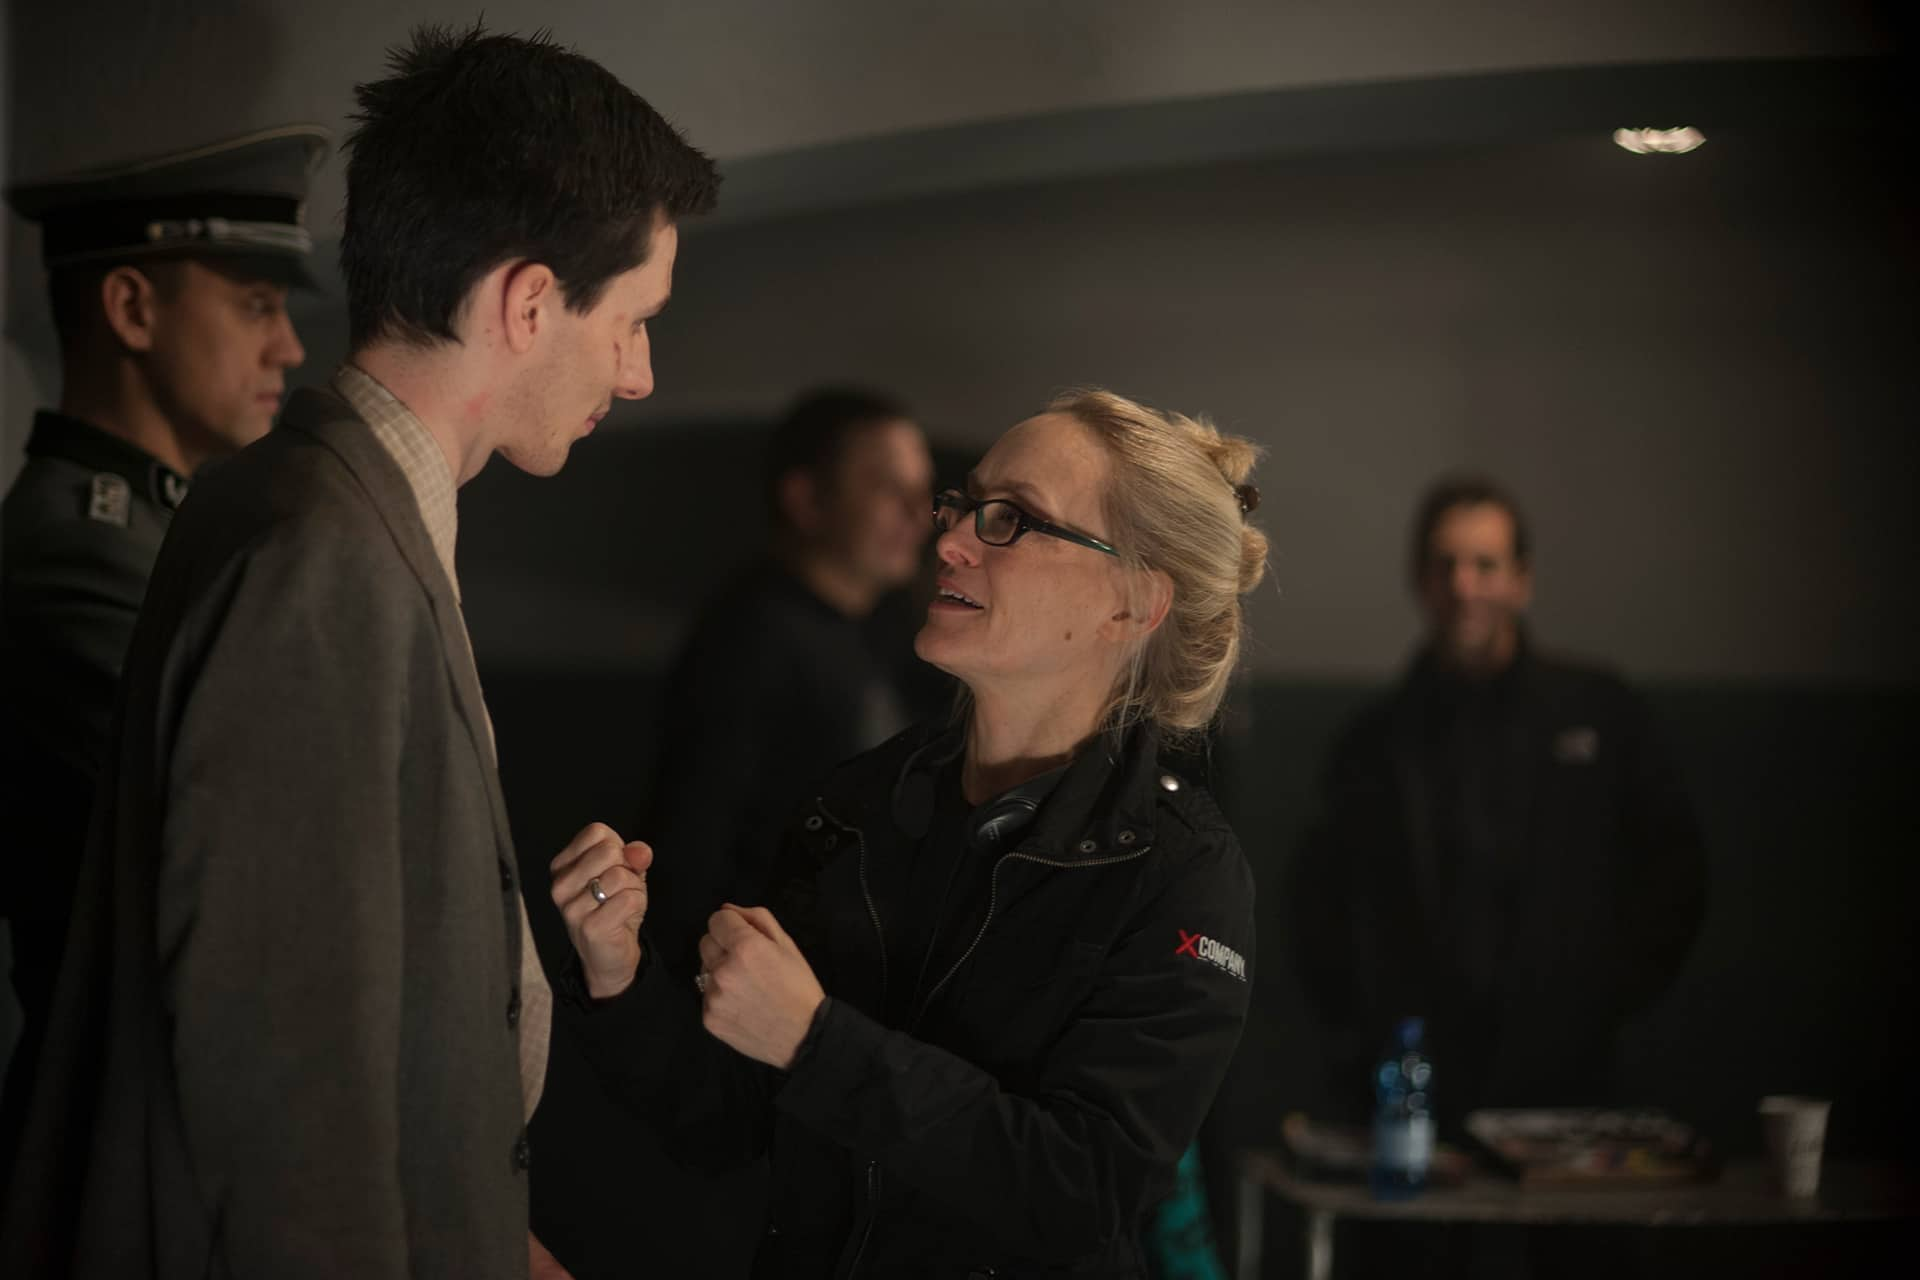 Behind the scenes on the set of X Company Season 3 with Director Stephanie Morgenstern and James MacCallum (William).